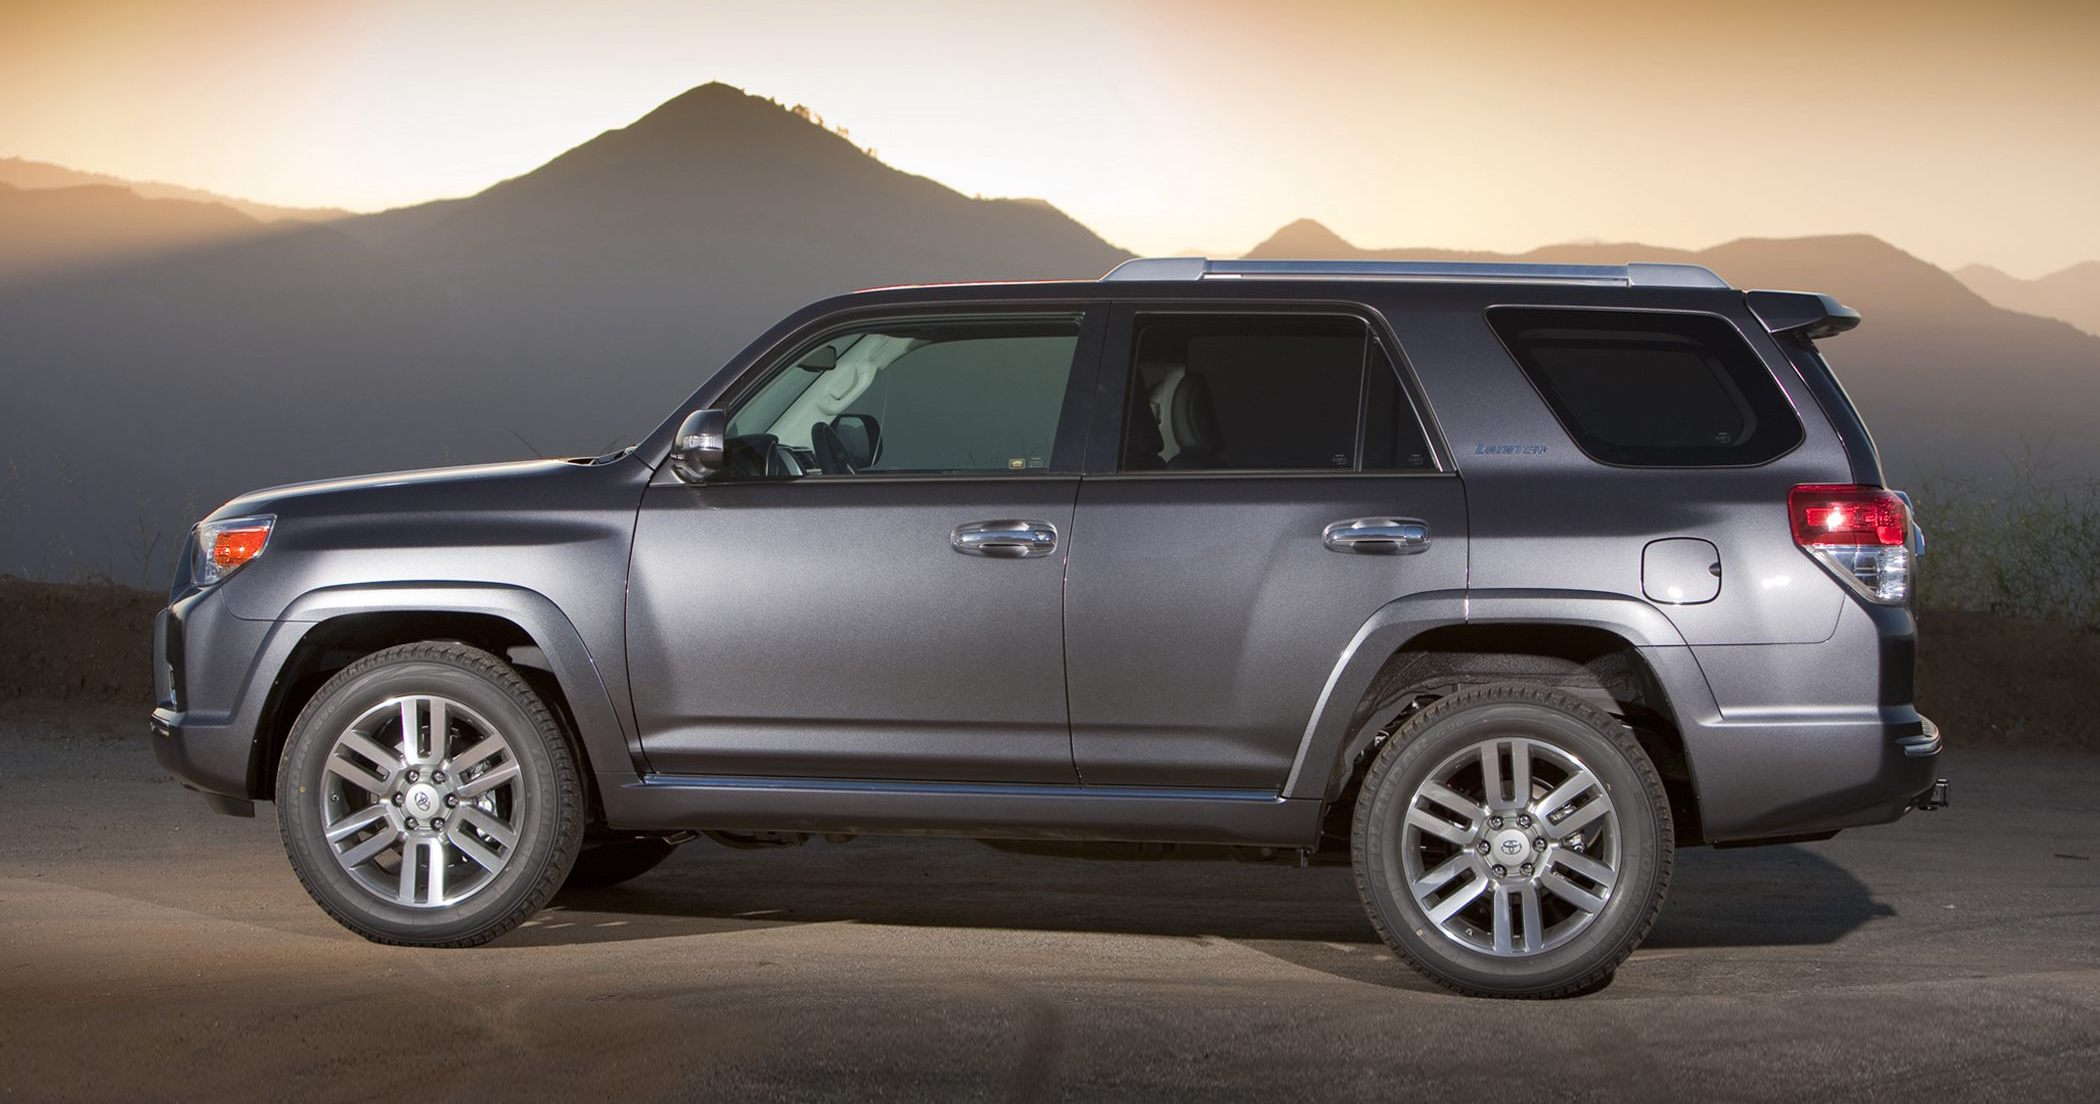 Gray 2011 Used Toyota 4Runner parked in front of mountains at sunset